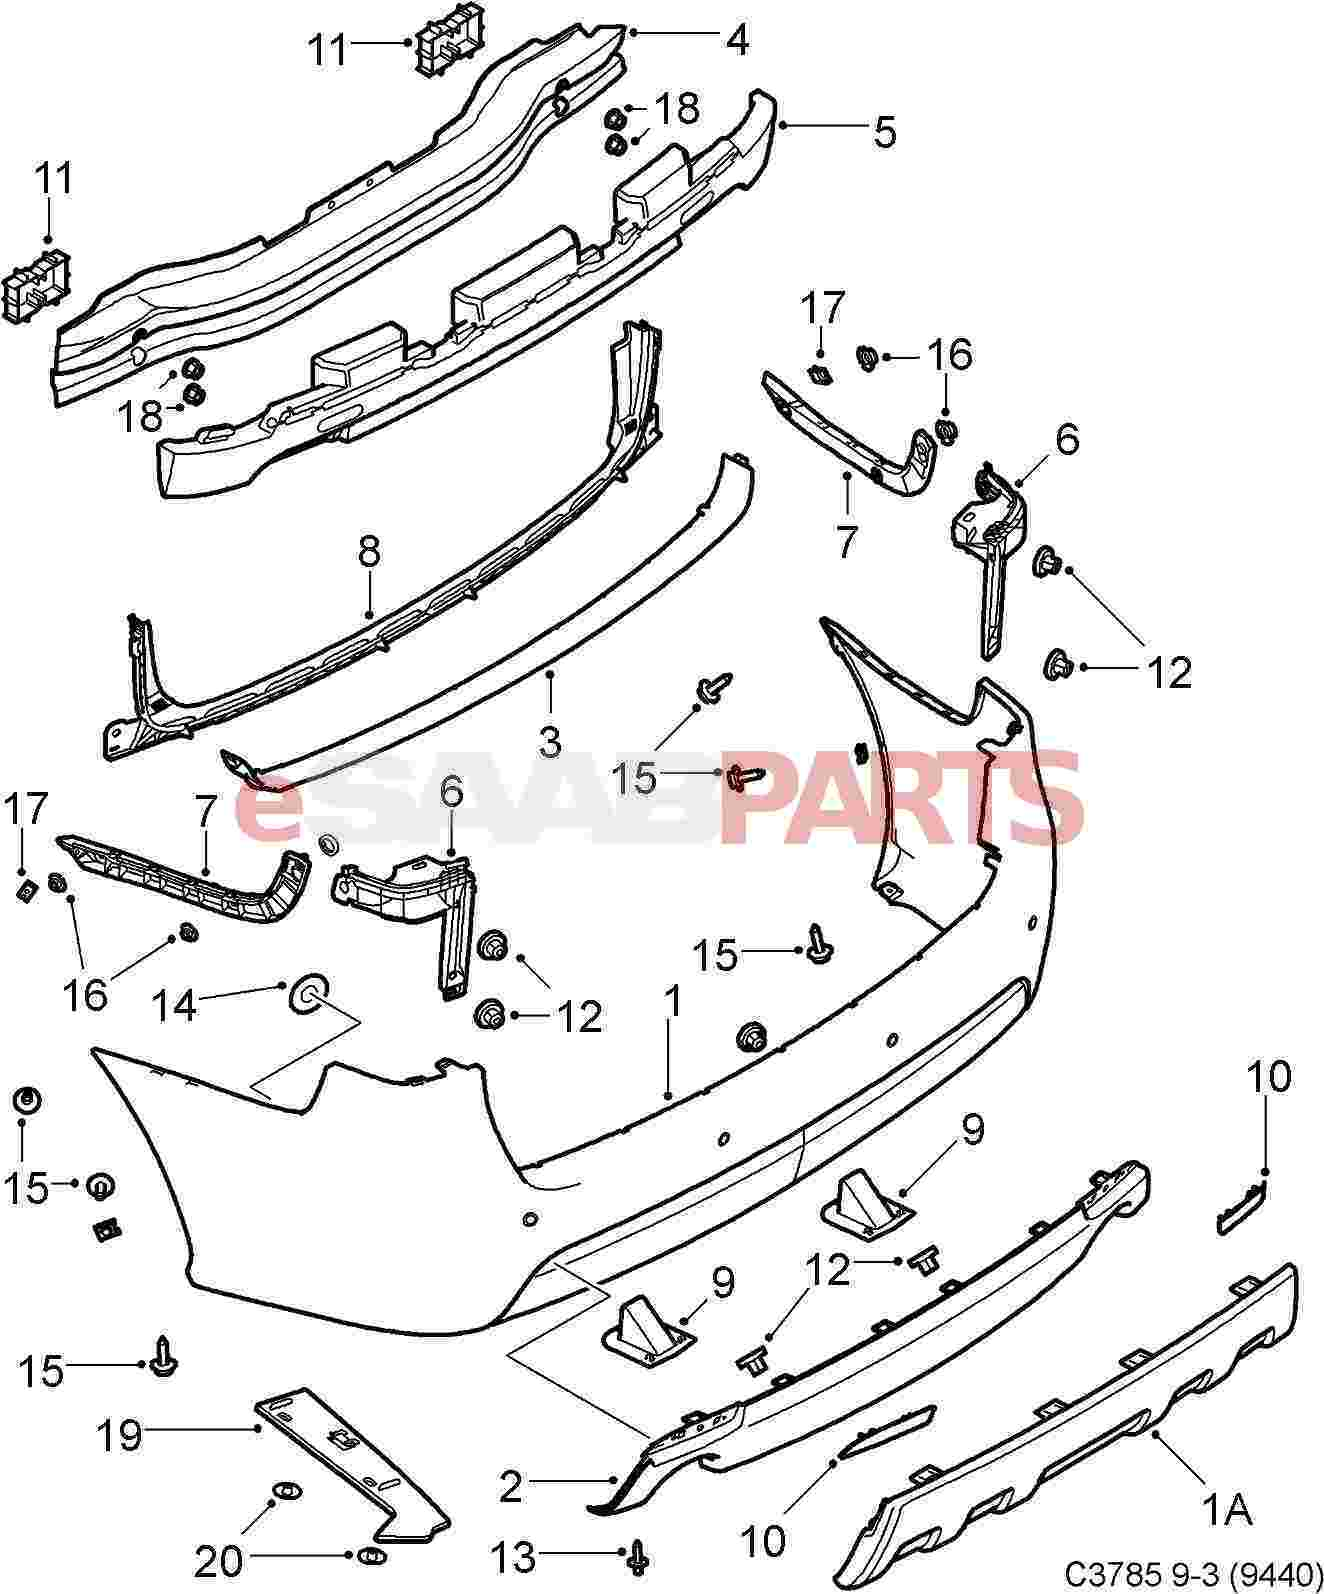 Showthread further Honda Cr V 2 0 1998 3 Specs And Images besides Power Steering Hose Leak 927552 furthermore 2012 Hyundai Sonata Engine Diagram 2011 Ford Fusion Engine Diagram Throughout 2009 Hyundai Accent Exhaust Pipe Diagram besides 2003 Kia Rio Radiator Replacement. on acura tl exhaust